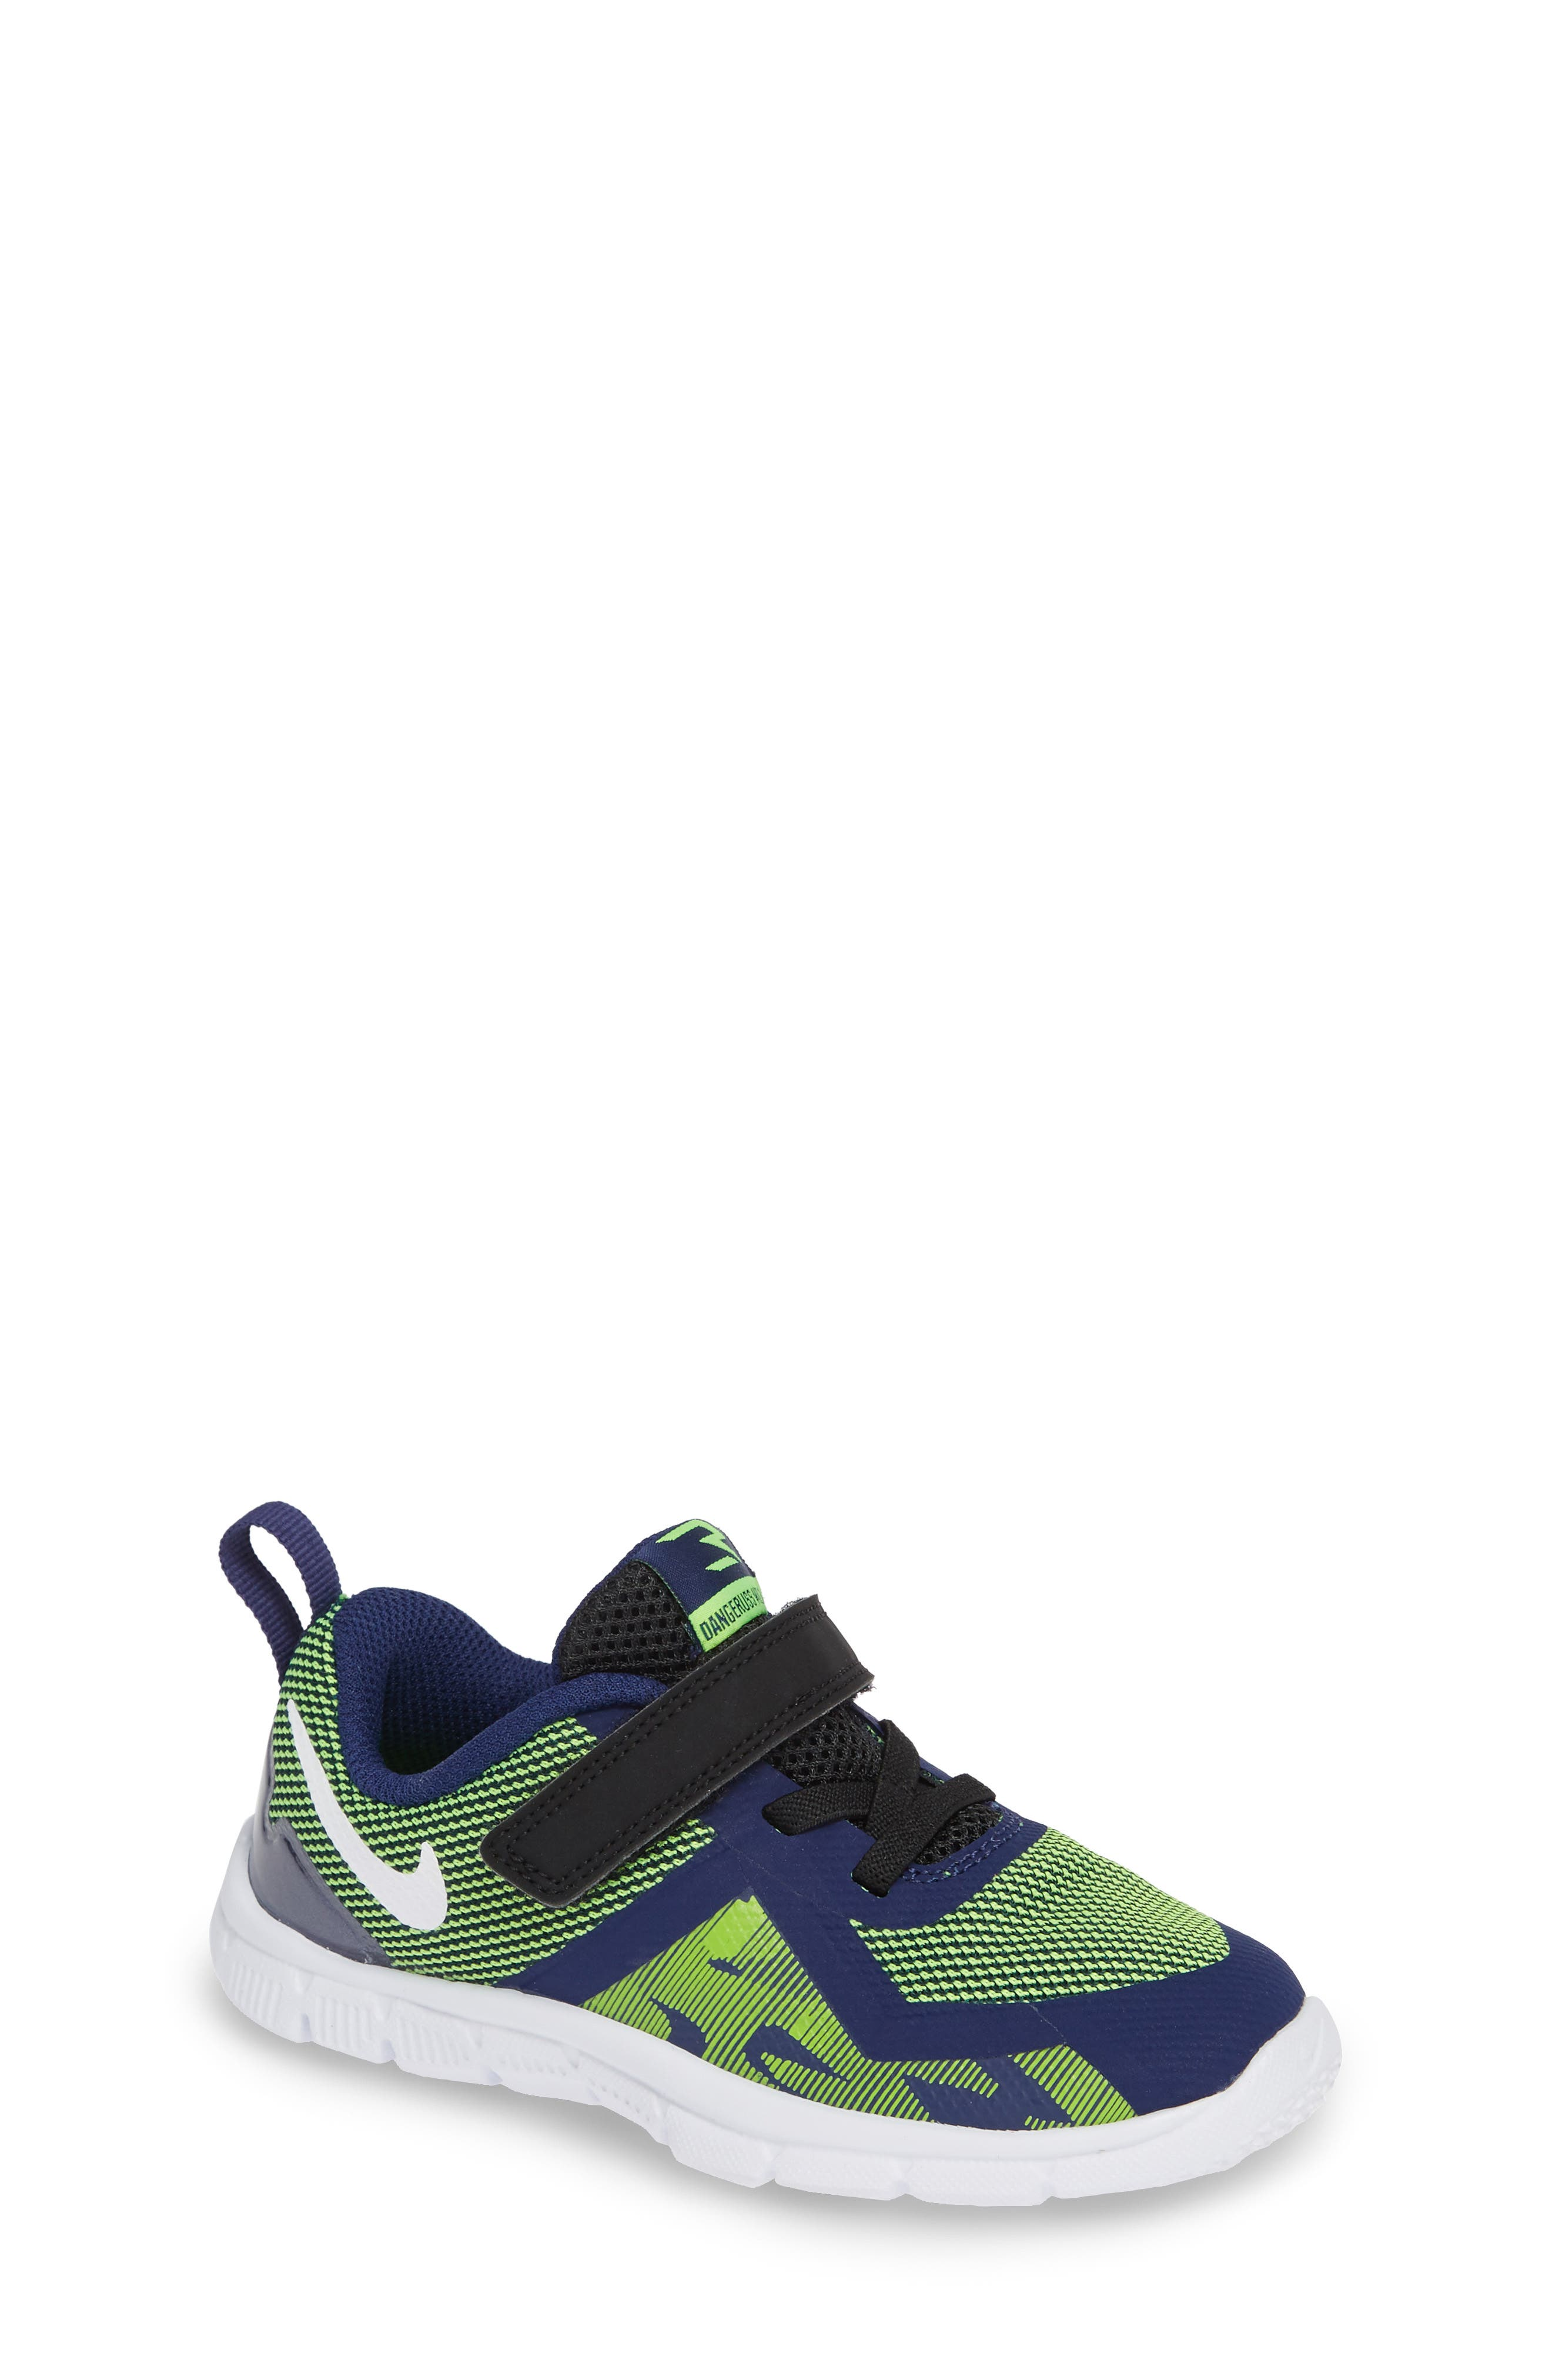 Flex Control II Training Shoe,                         Main,                         color, BLUE/ WHITE/ ELECTRIC GREEN